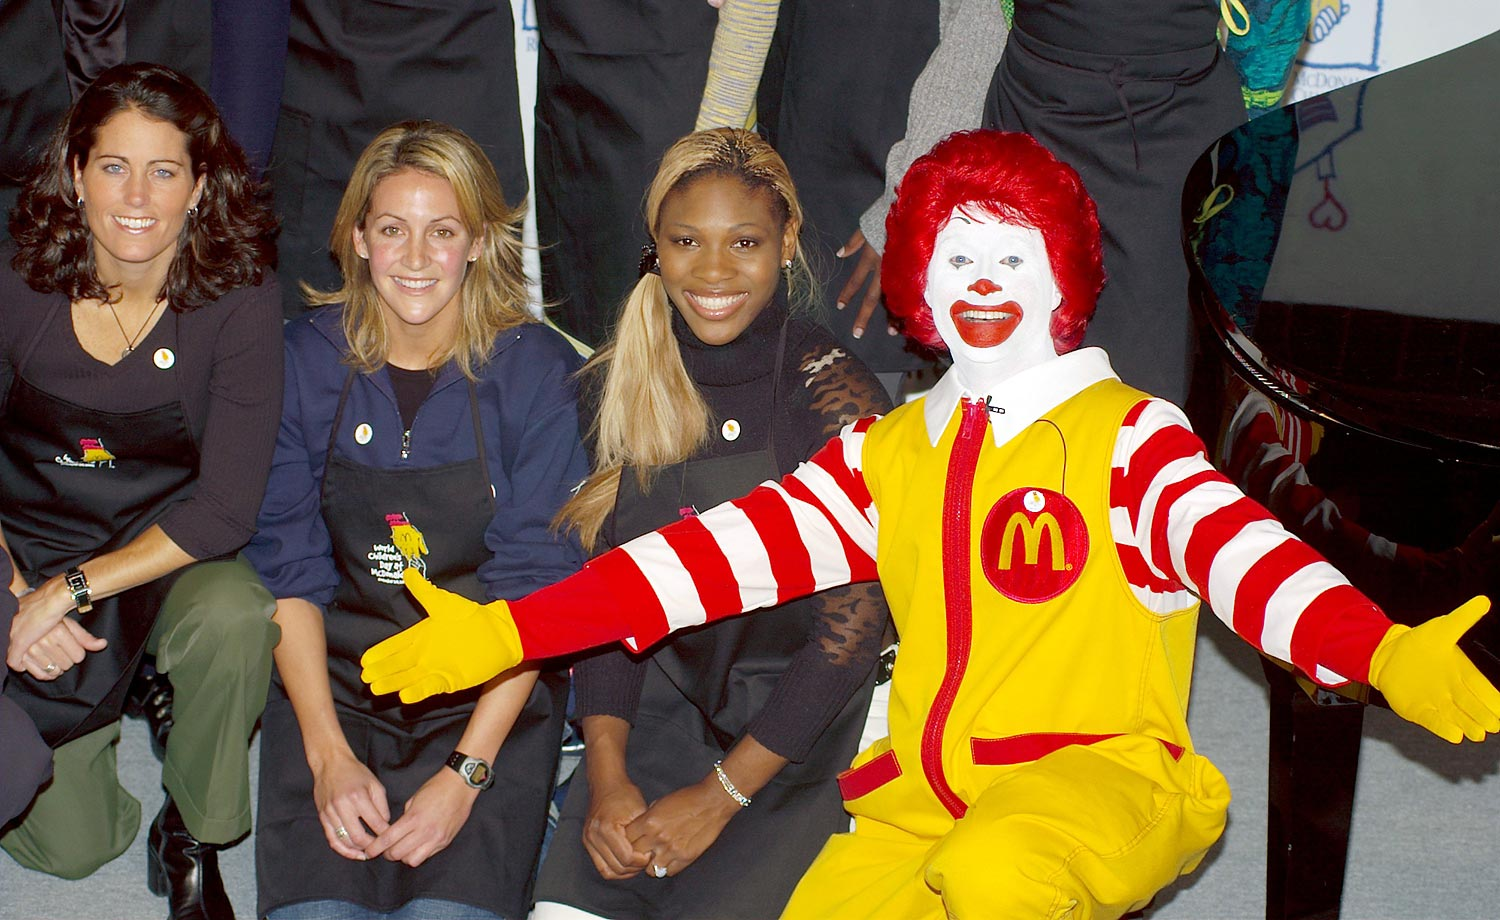 Julie Foudy, Summer Sanders and Serena appeared with Ronald McDonald at the World Children's Day Event in New York City in November 2002.